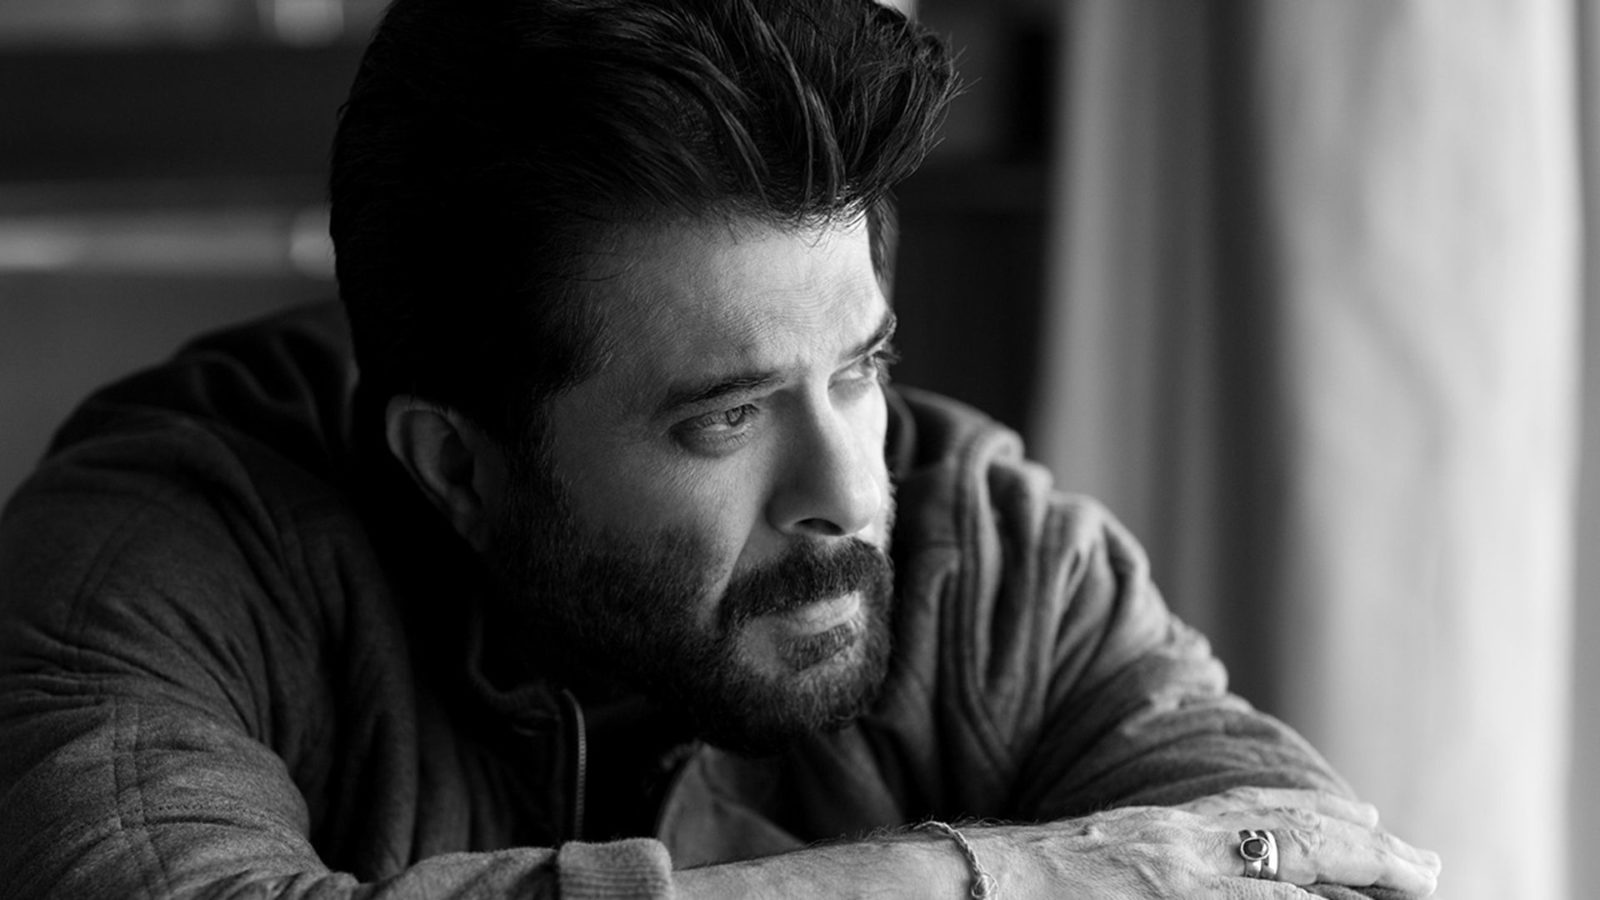 Millennials, you can learn a thing or two from Anil Kapoor's style game